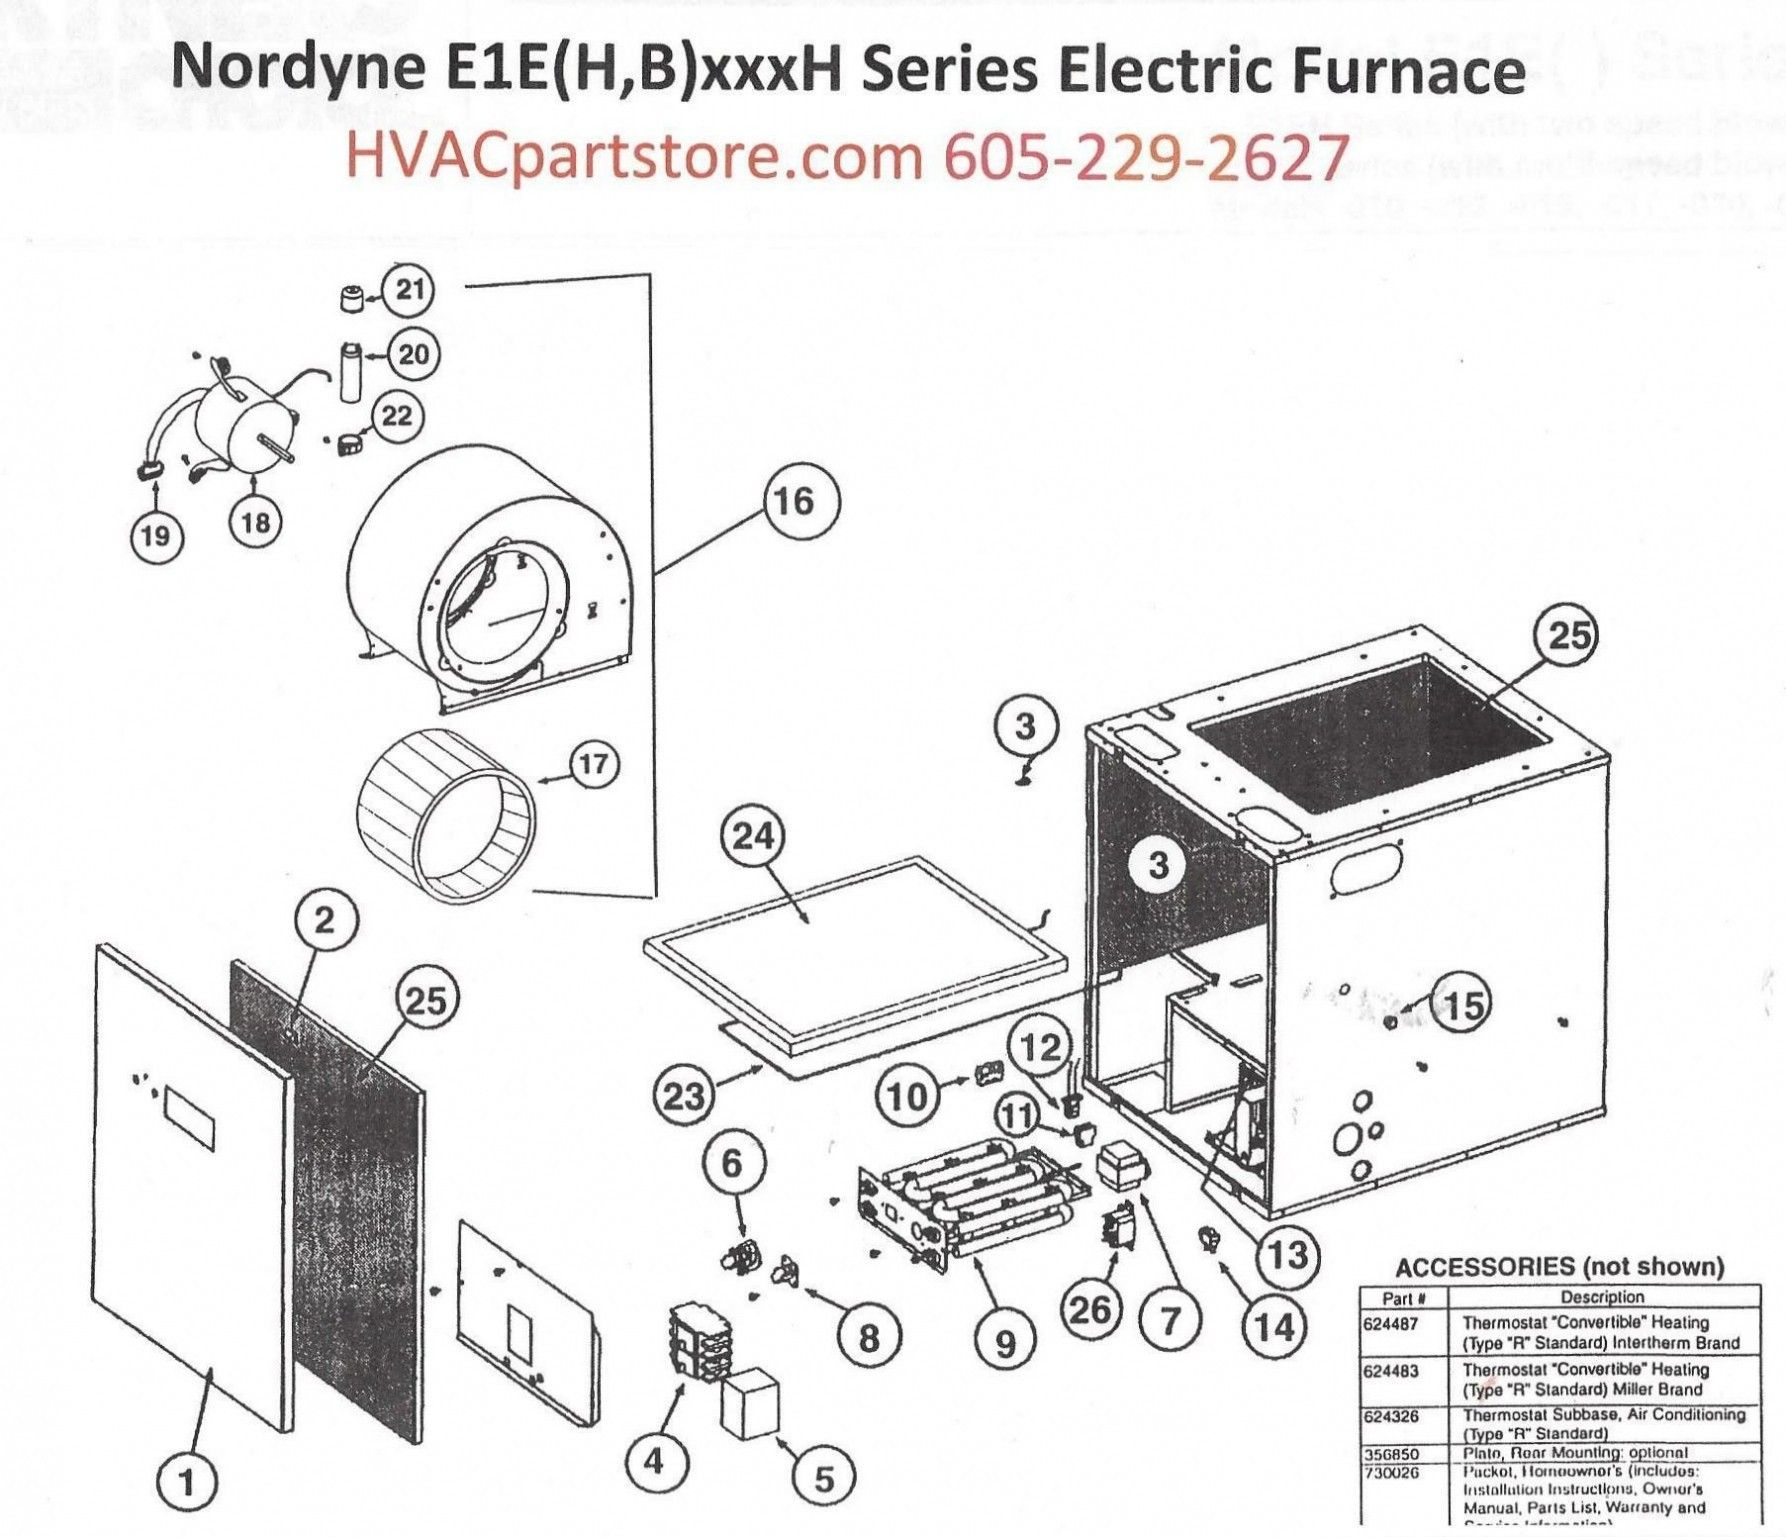 Wiring Diagram Thermostat Subbase. . Wiring Diagram on